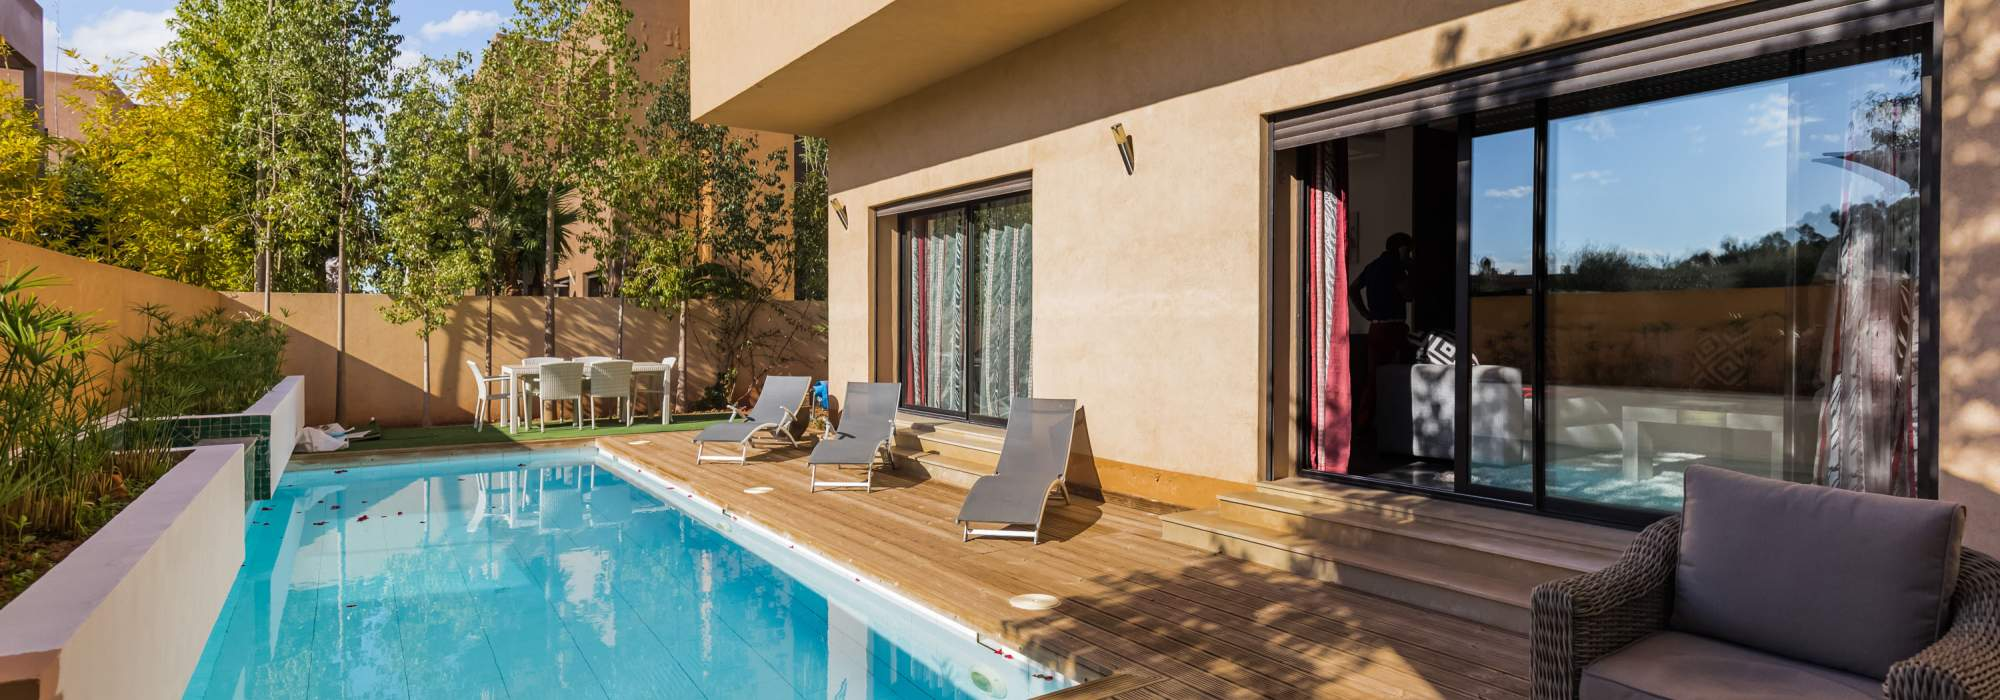 vente villa contemporaine golf amelkis marrakech